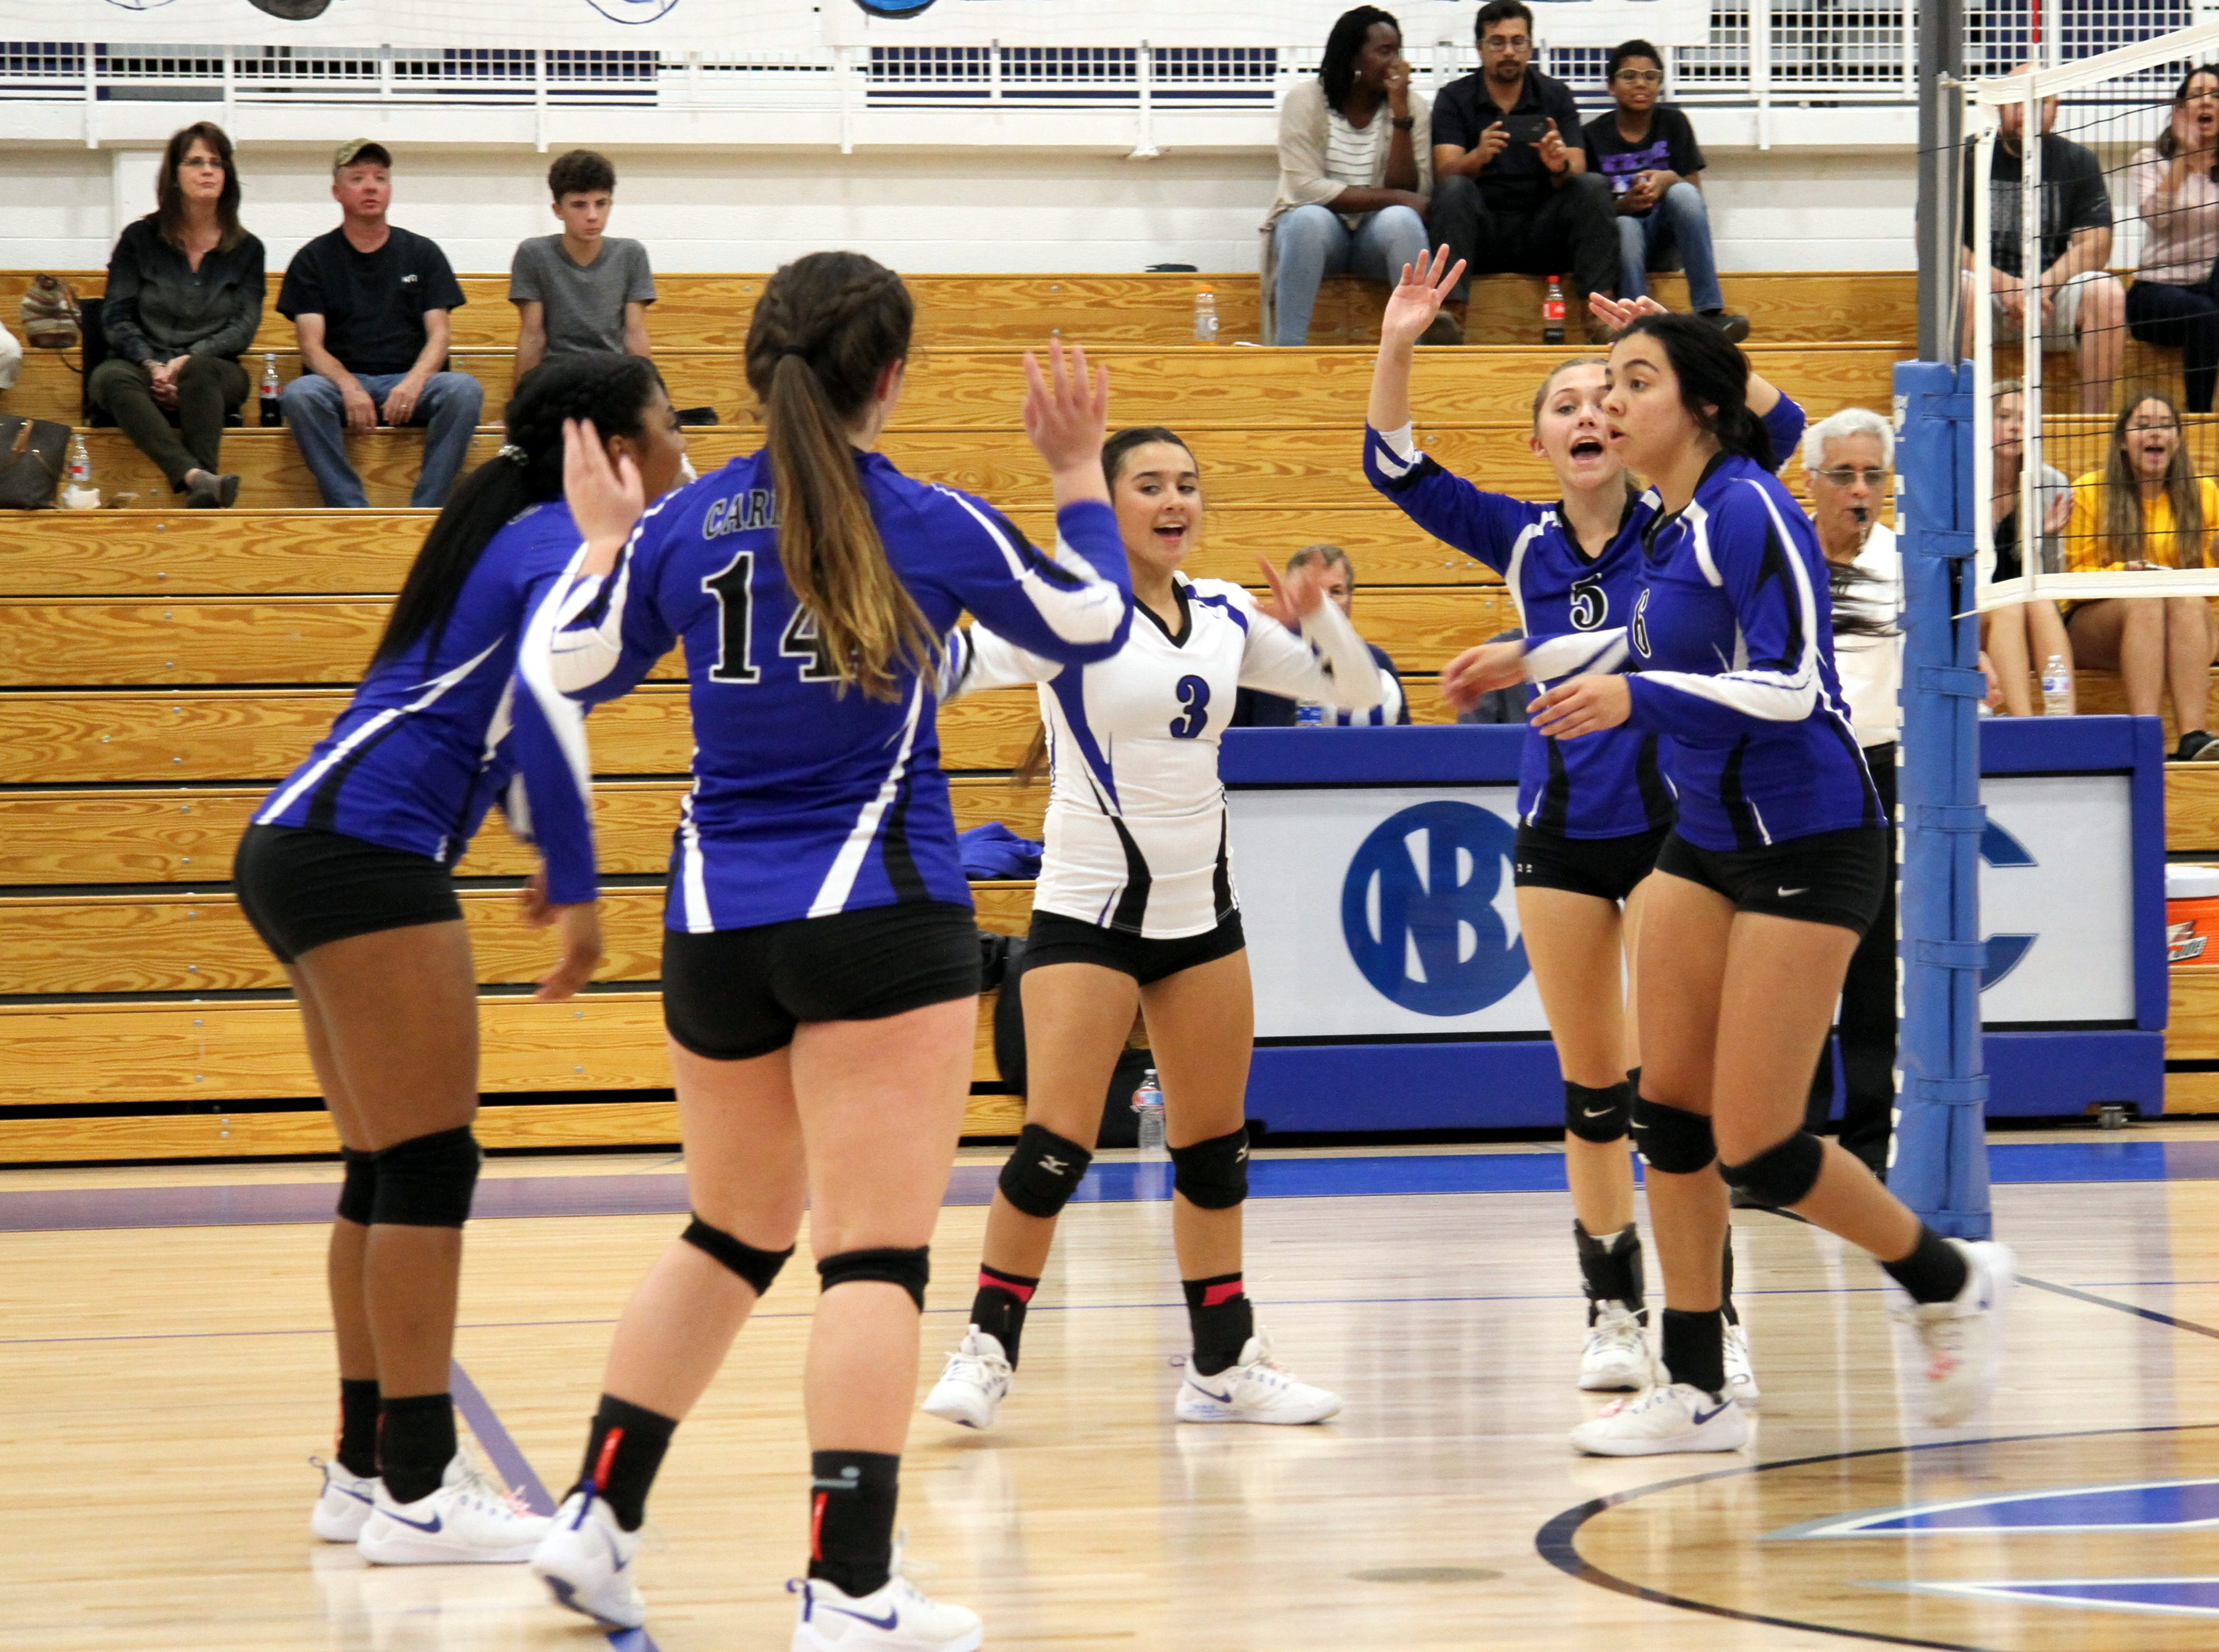 The Cavegirls celebrate winning a point in the second set of Tuesday's match against Hobbs.